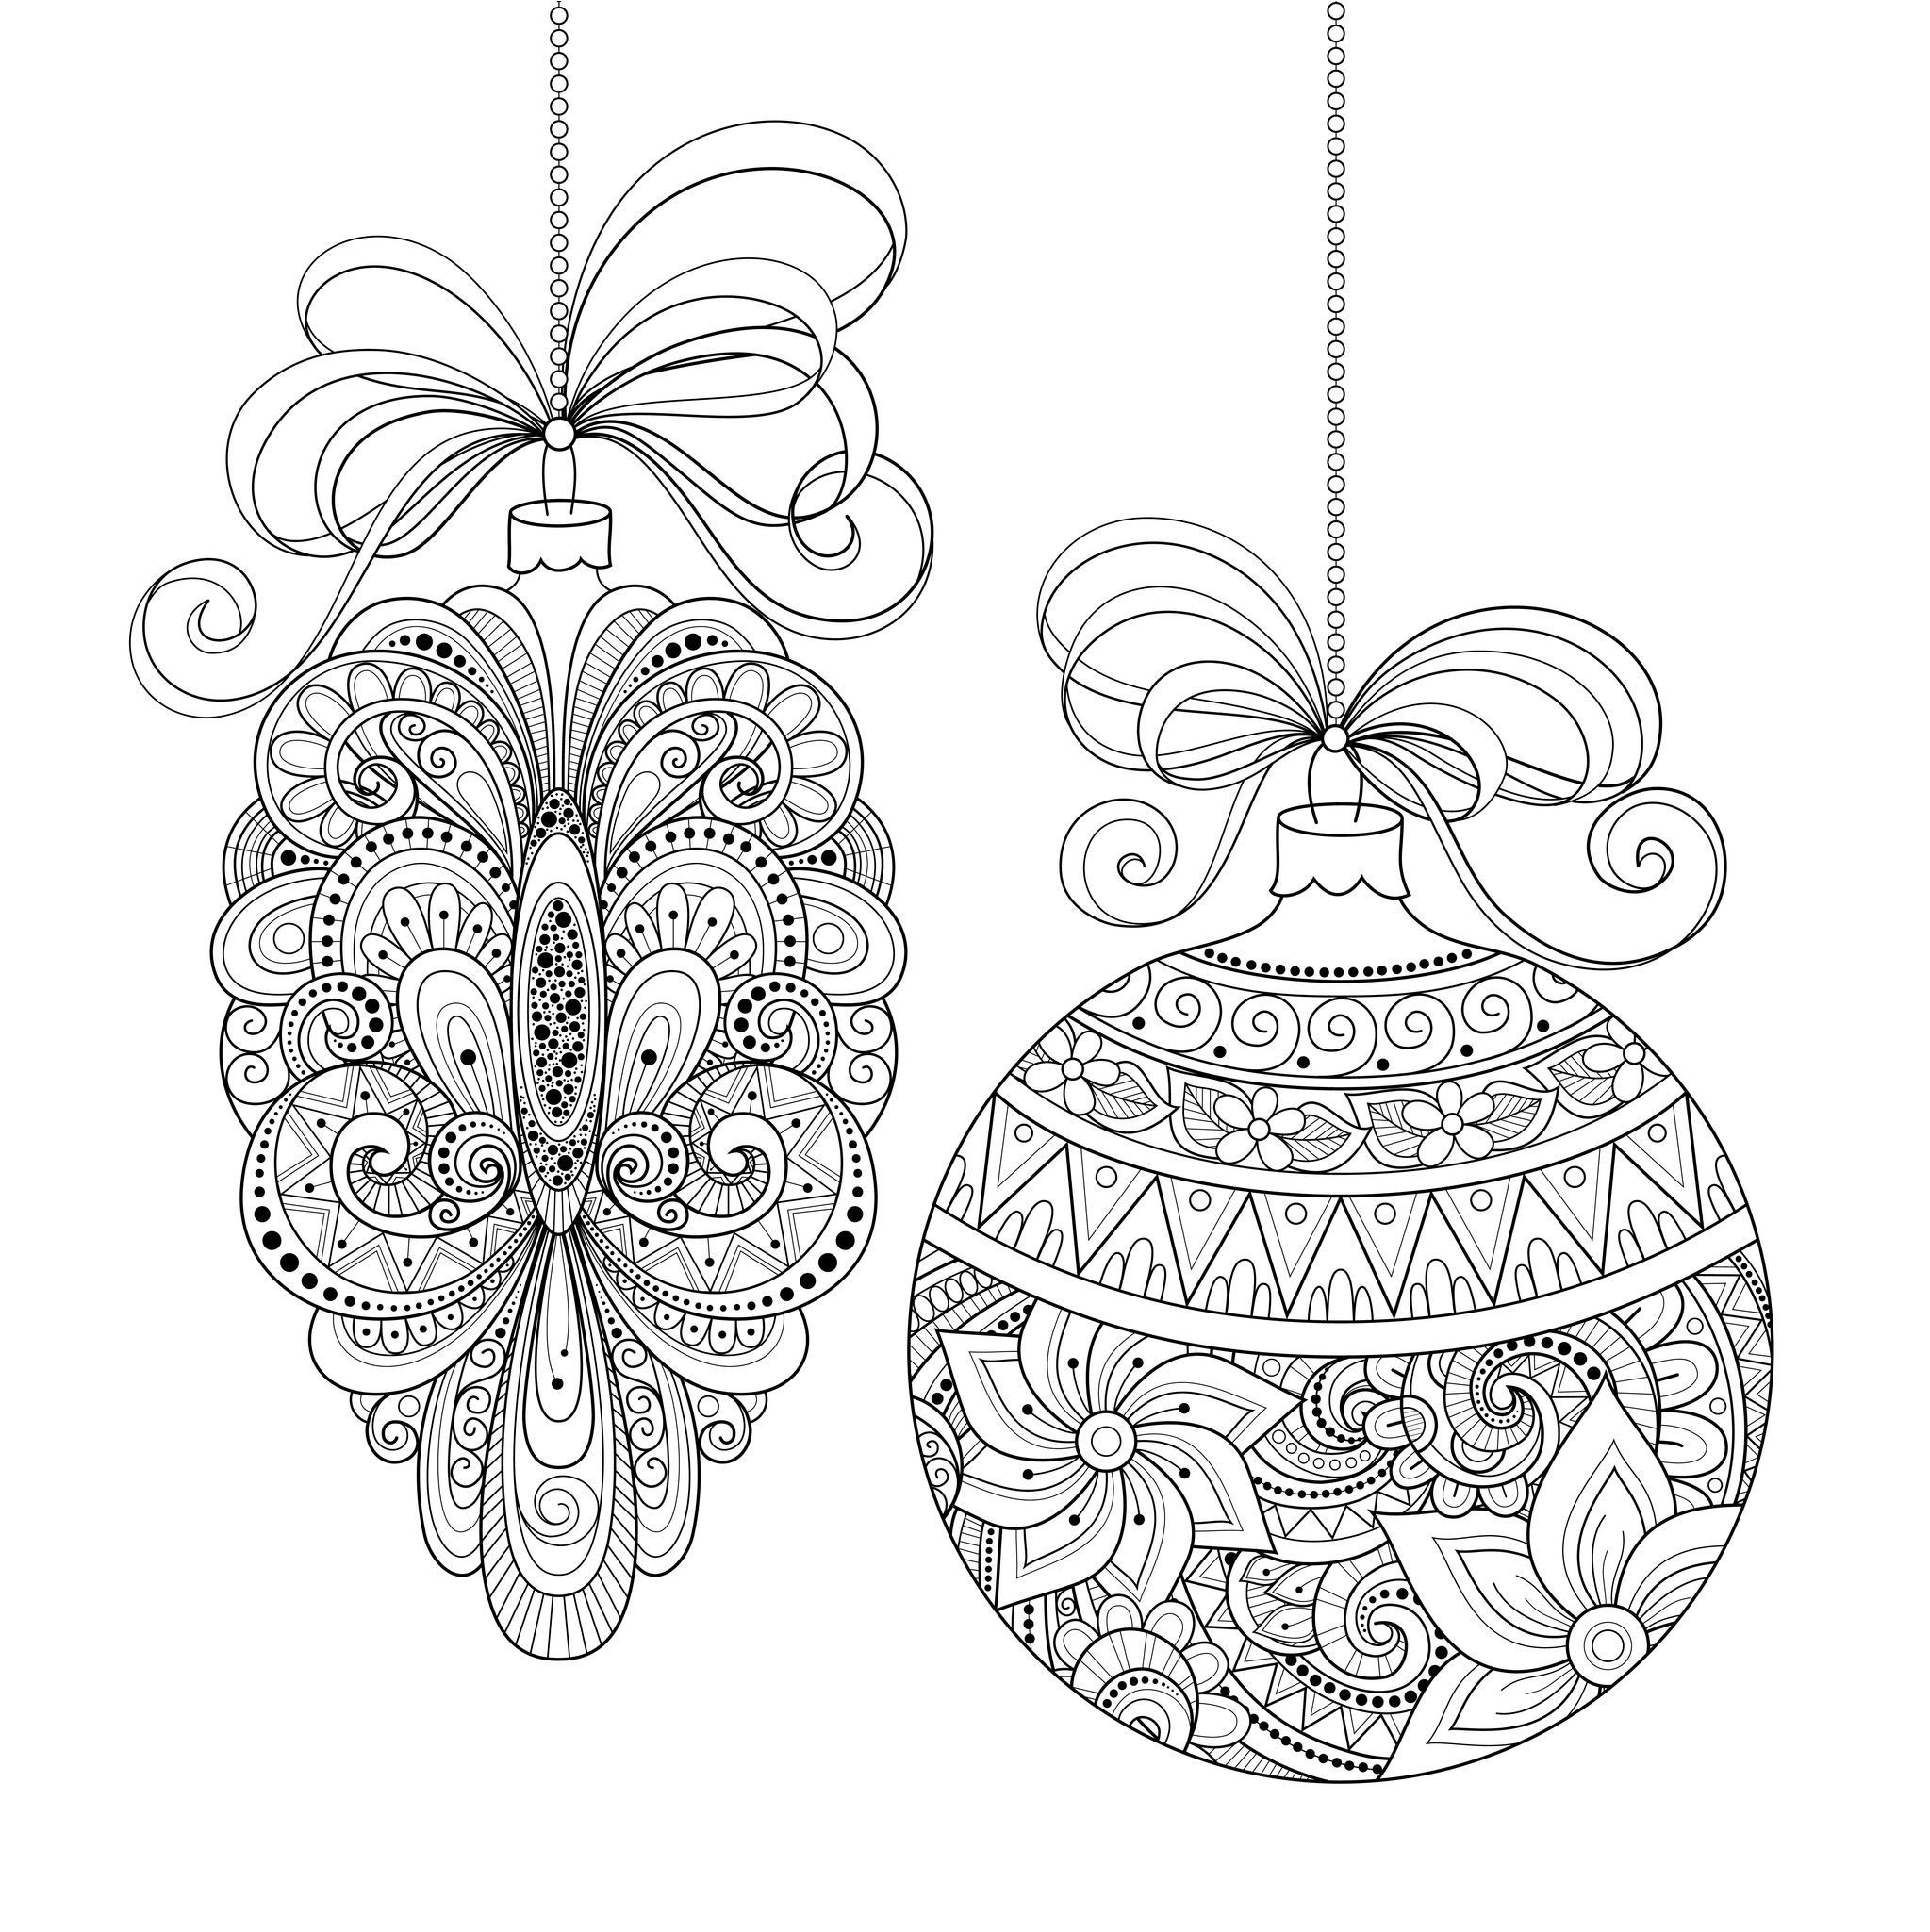 Christmas Card Coloring Sheets With Ornaments Use This Page To Make Your Own Cool